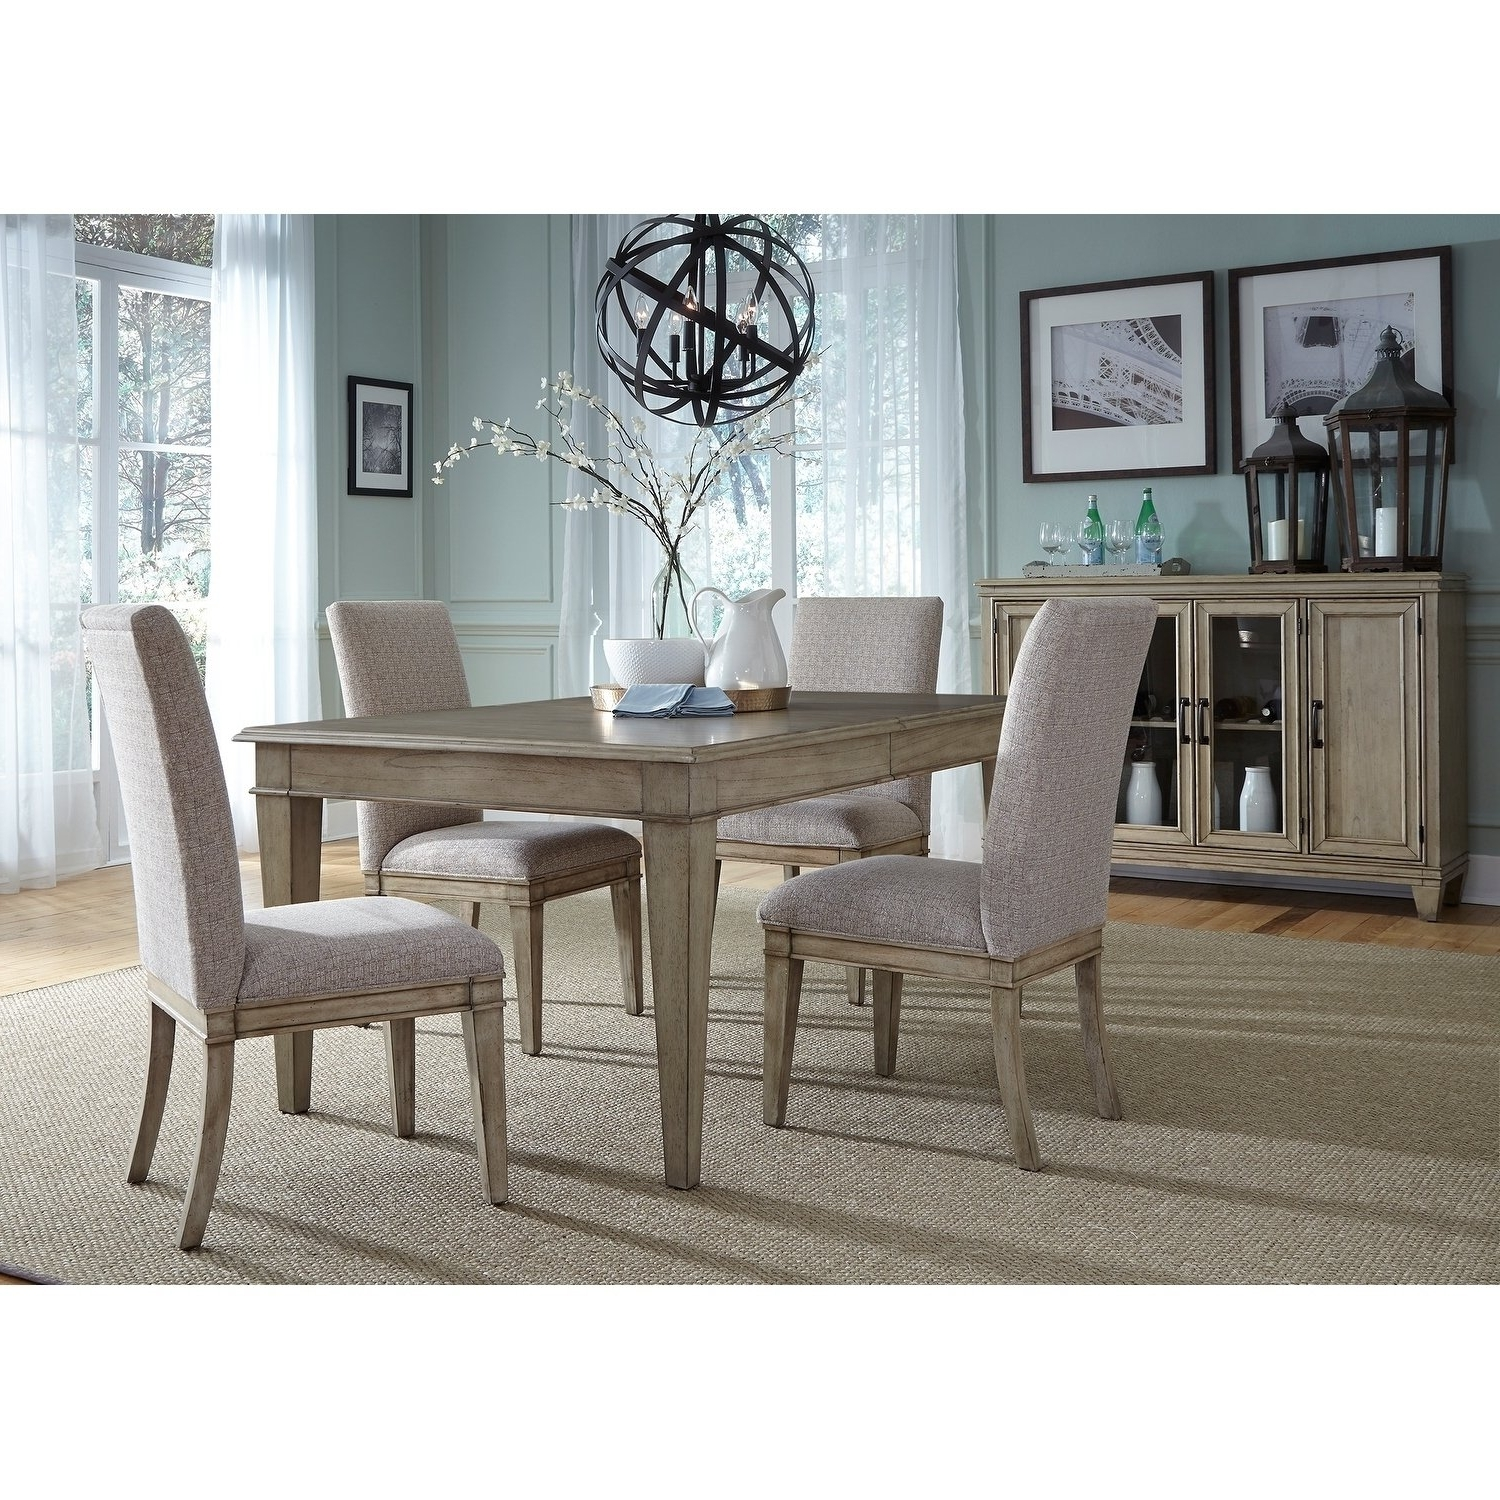 Most Recently Released Jaxon 5 Piece Extension Round Dining Sets With Wood Chairs Throughout Grayton Grove Driftwood Opt 5 Piece Rectangular Dining Table Set (Gallery 13 of 25)